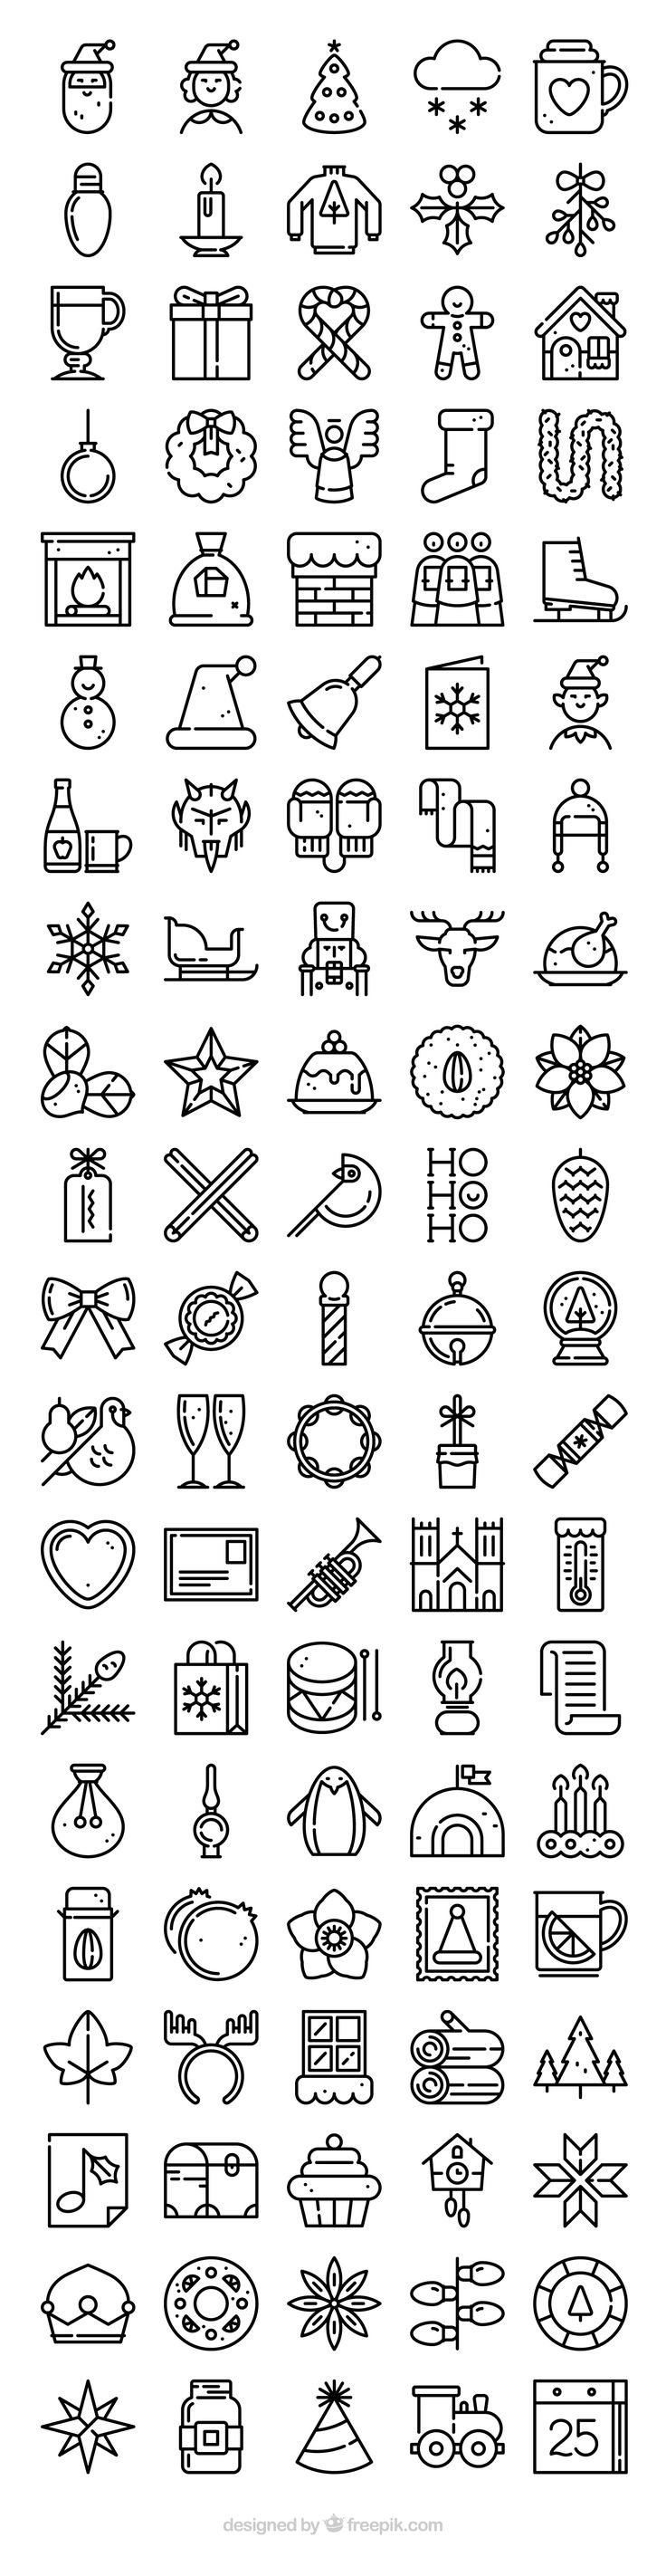 100 FREE Christmas icons! Flaticon.